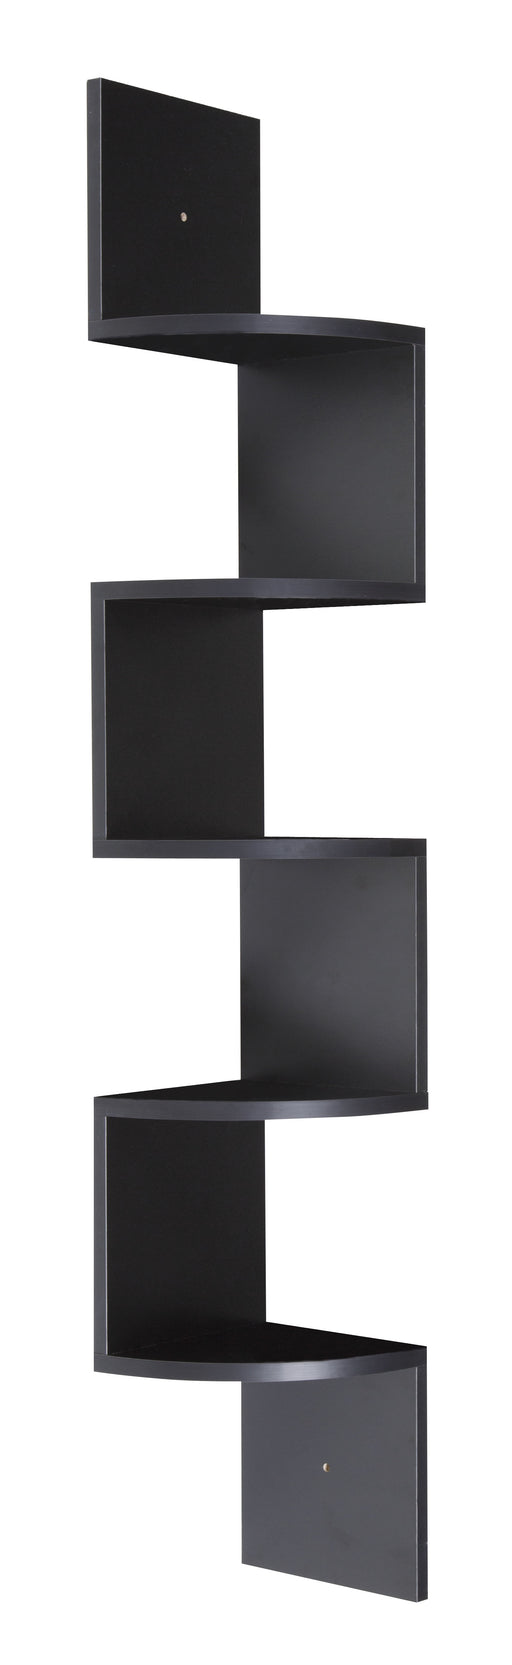 OneSpace Corner Wall Mount Shelf